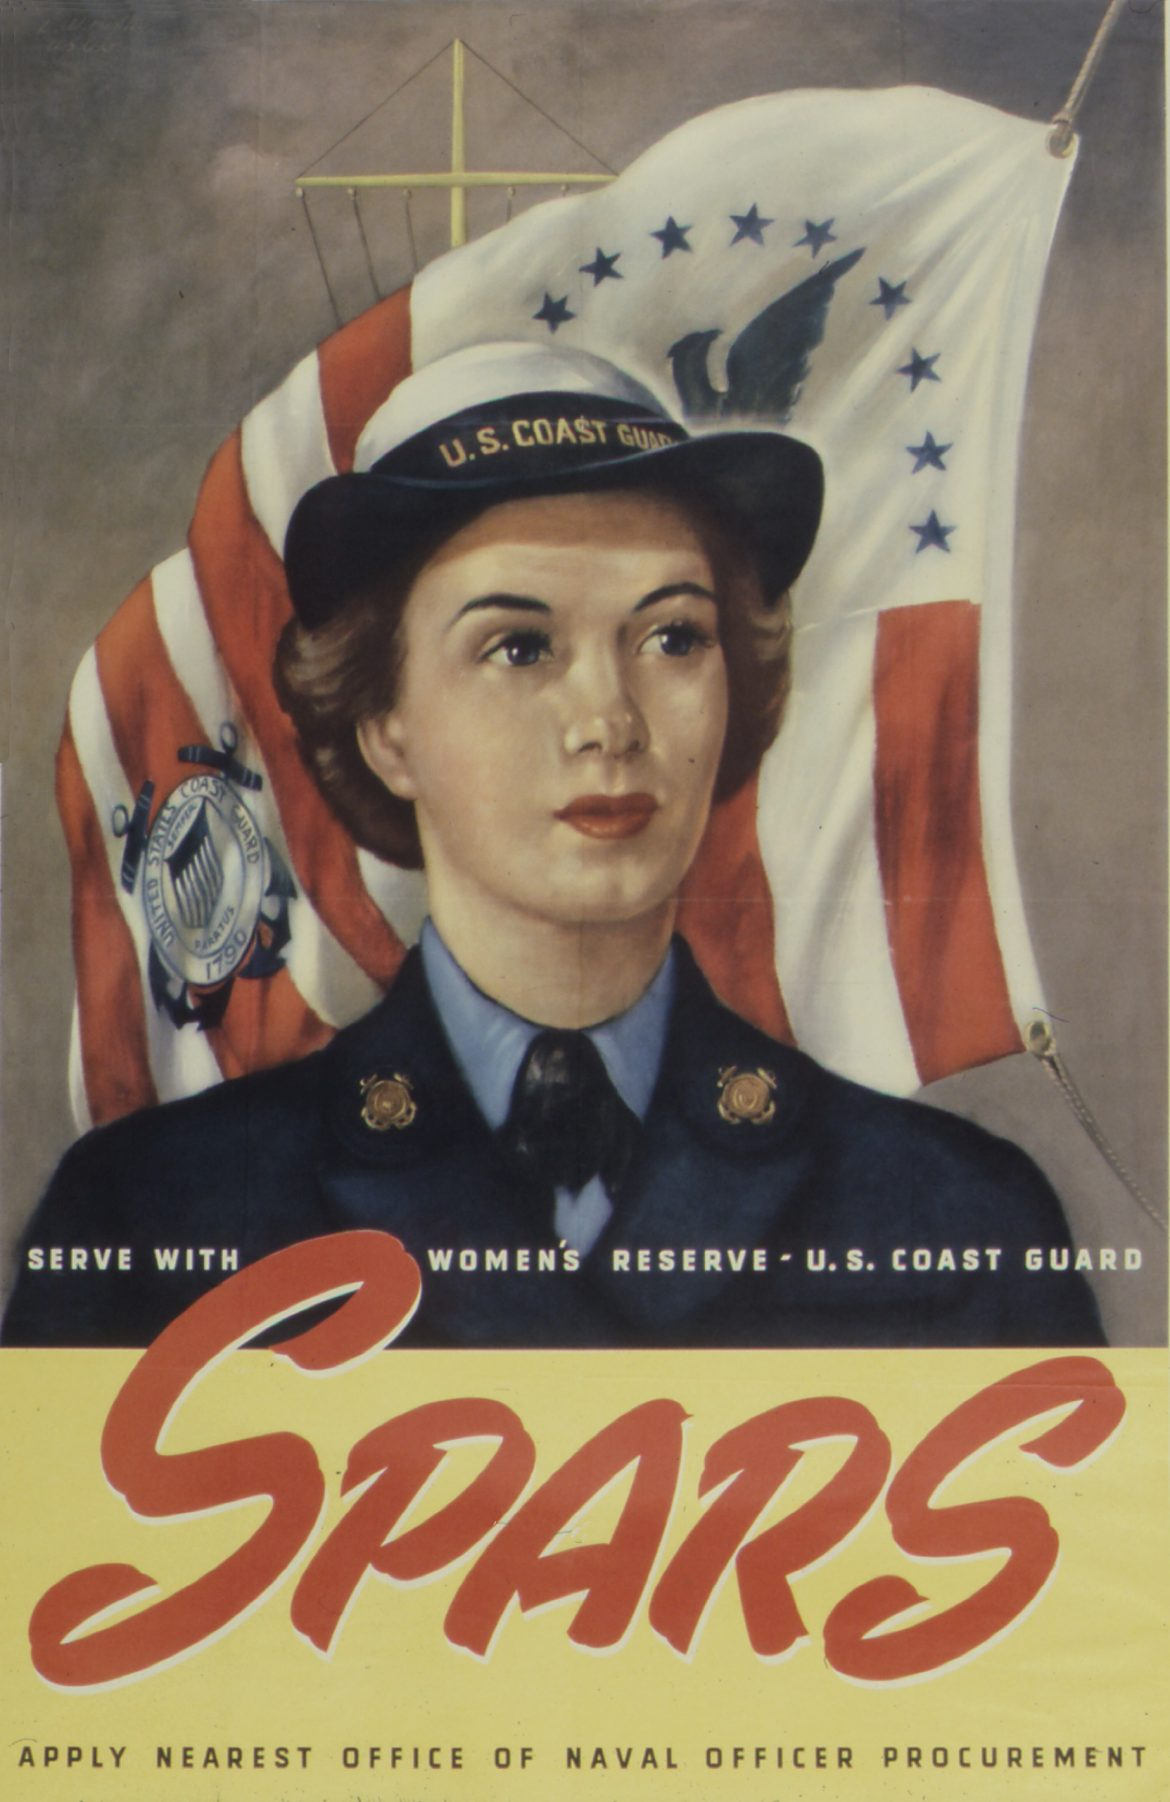 SPARS Recruiting Poster during World War II